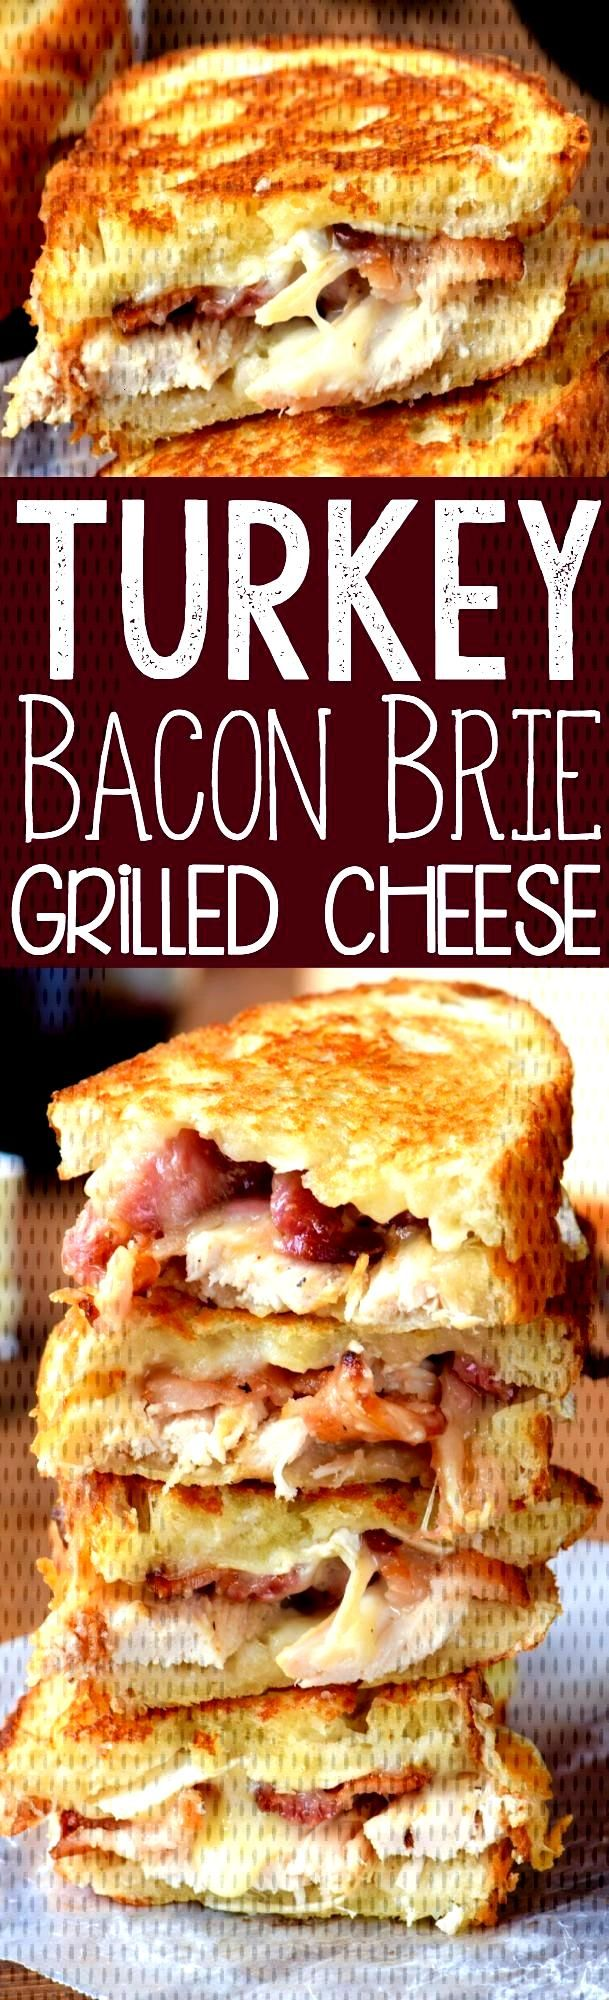 Turkey Bacon Brie Grilled Cheese Sandwich -